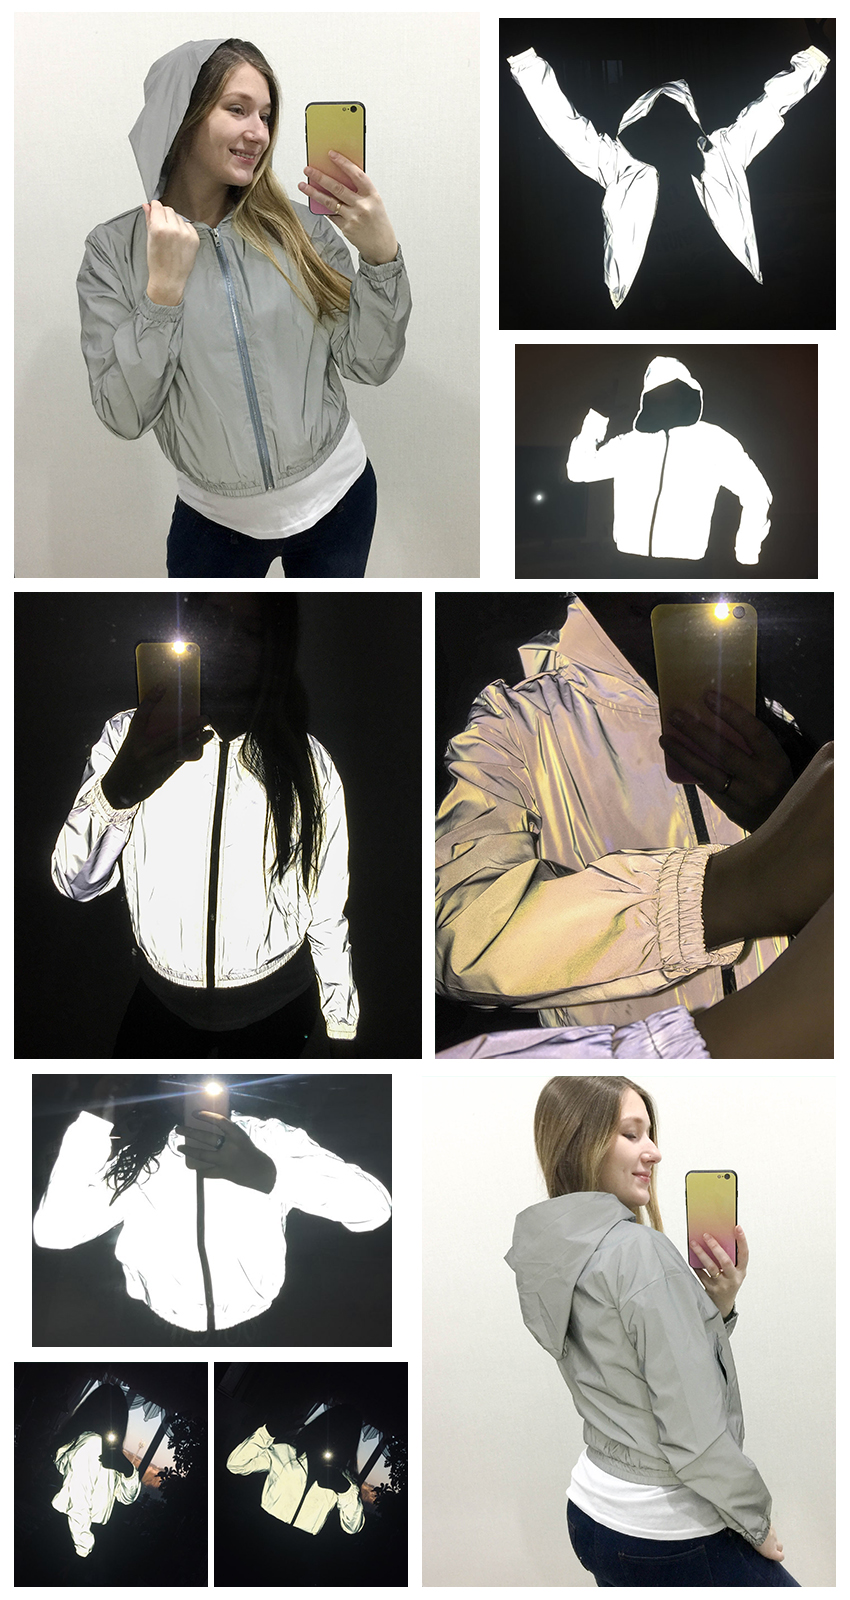 H033ce5fa6d484425aeb3b27d4d2e3128T - Mnealways18 Reflective Jacket Hip Hop Streetwear Fashion Casual Hooded Coat Zippers Autumn Women Jackets Coats Girls Neon